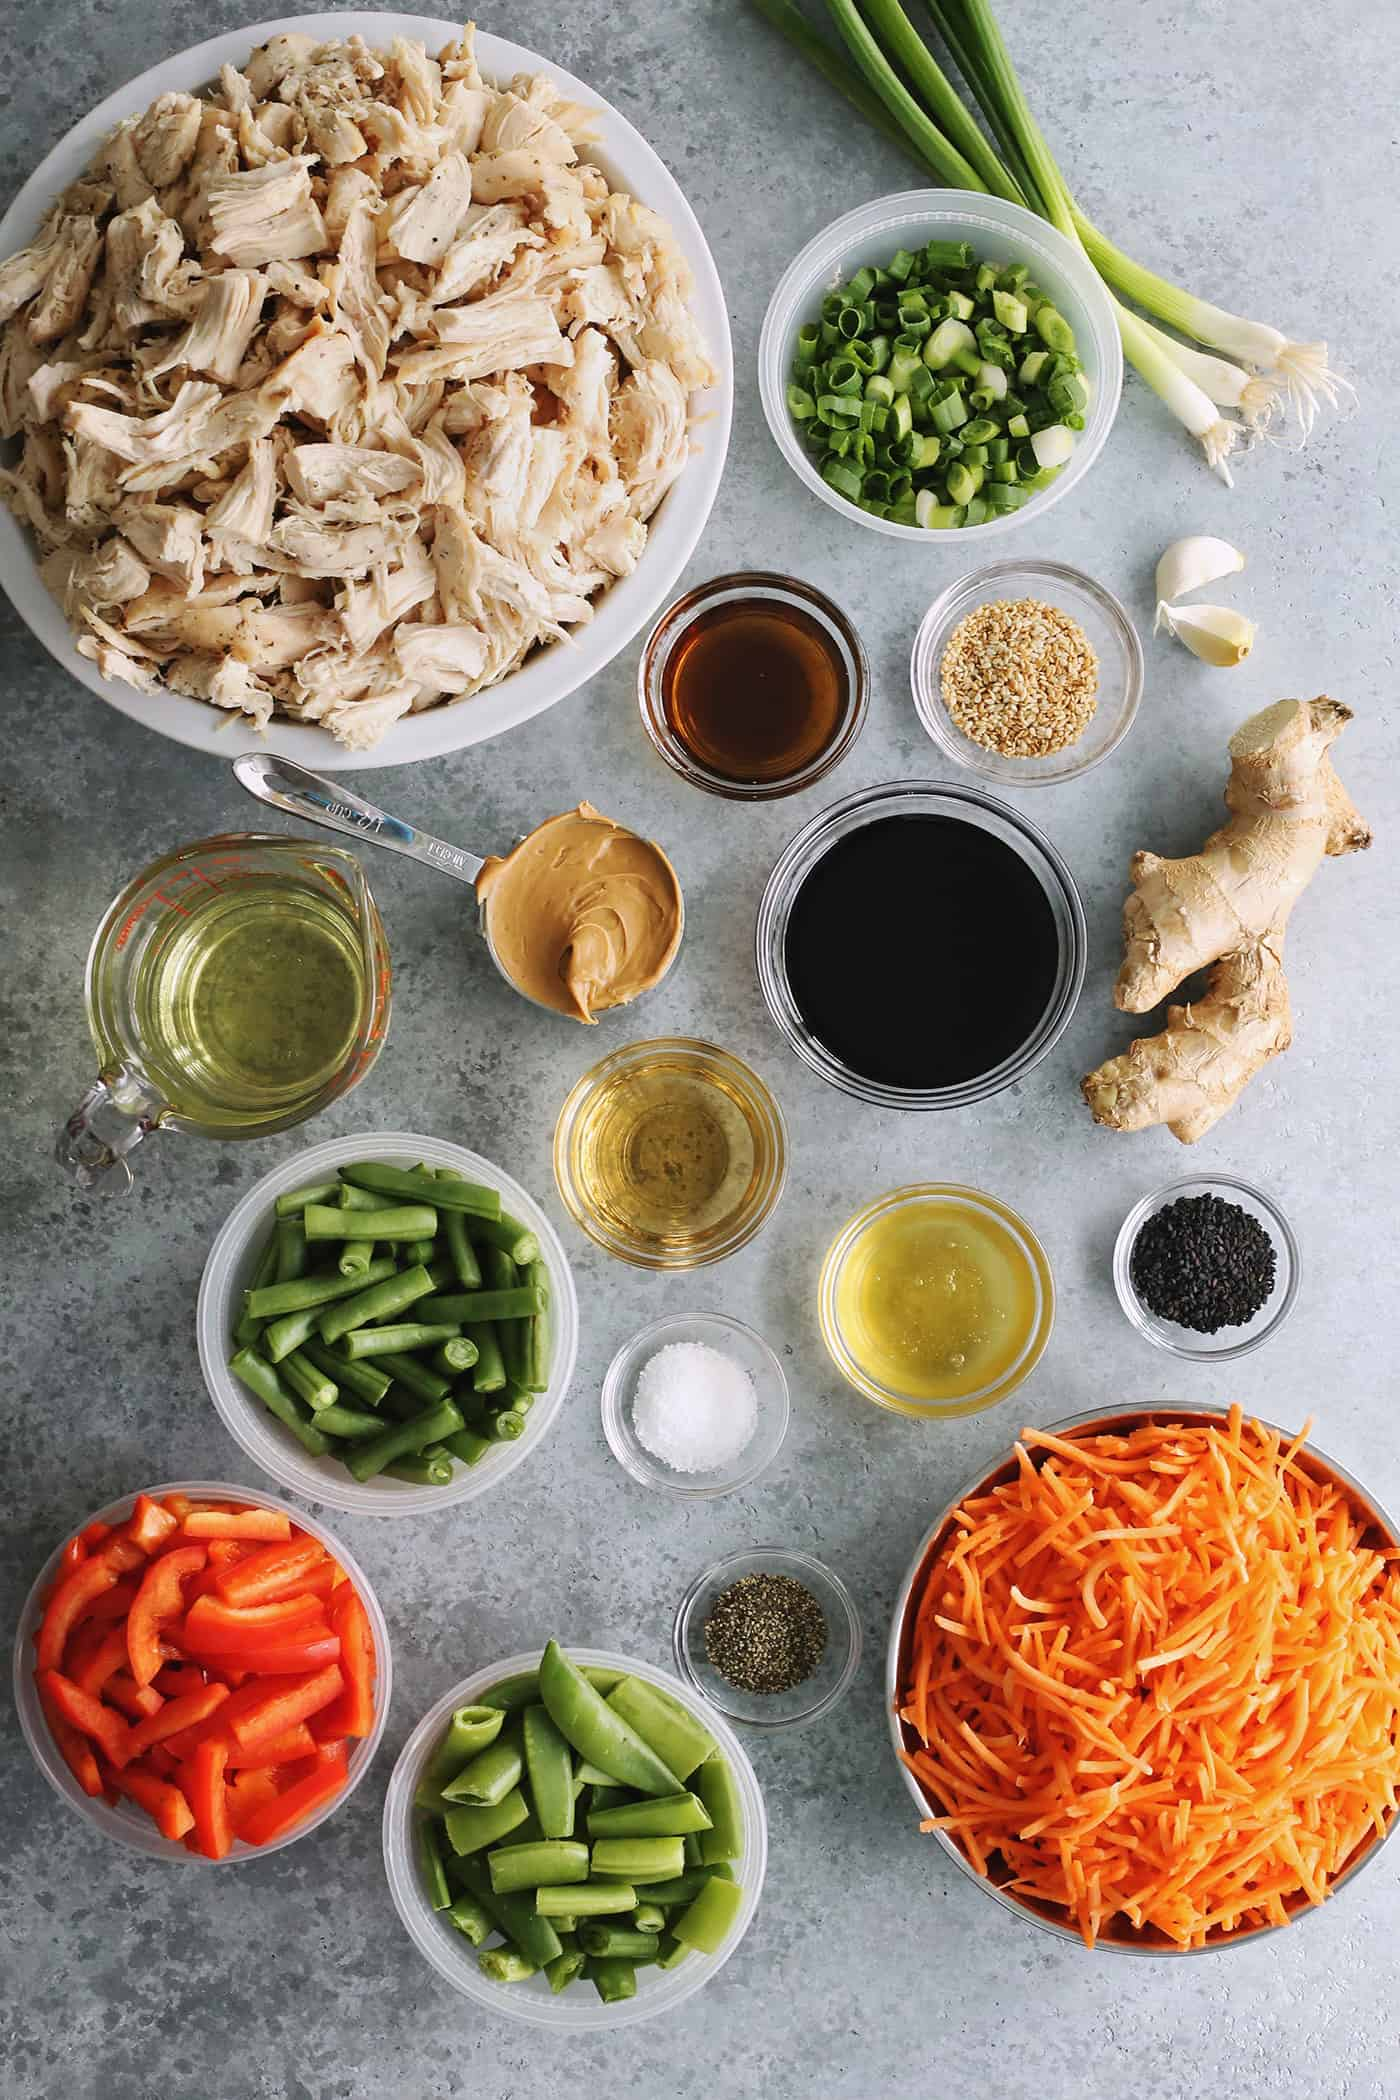 ingredients to make Chinese chicken salad, to include shredded chicken, fresh pea pods, red pepper, carrot, and green beans, plus a creamy peanut dressing